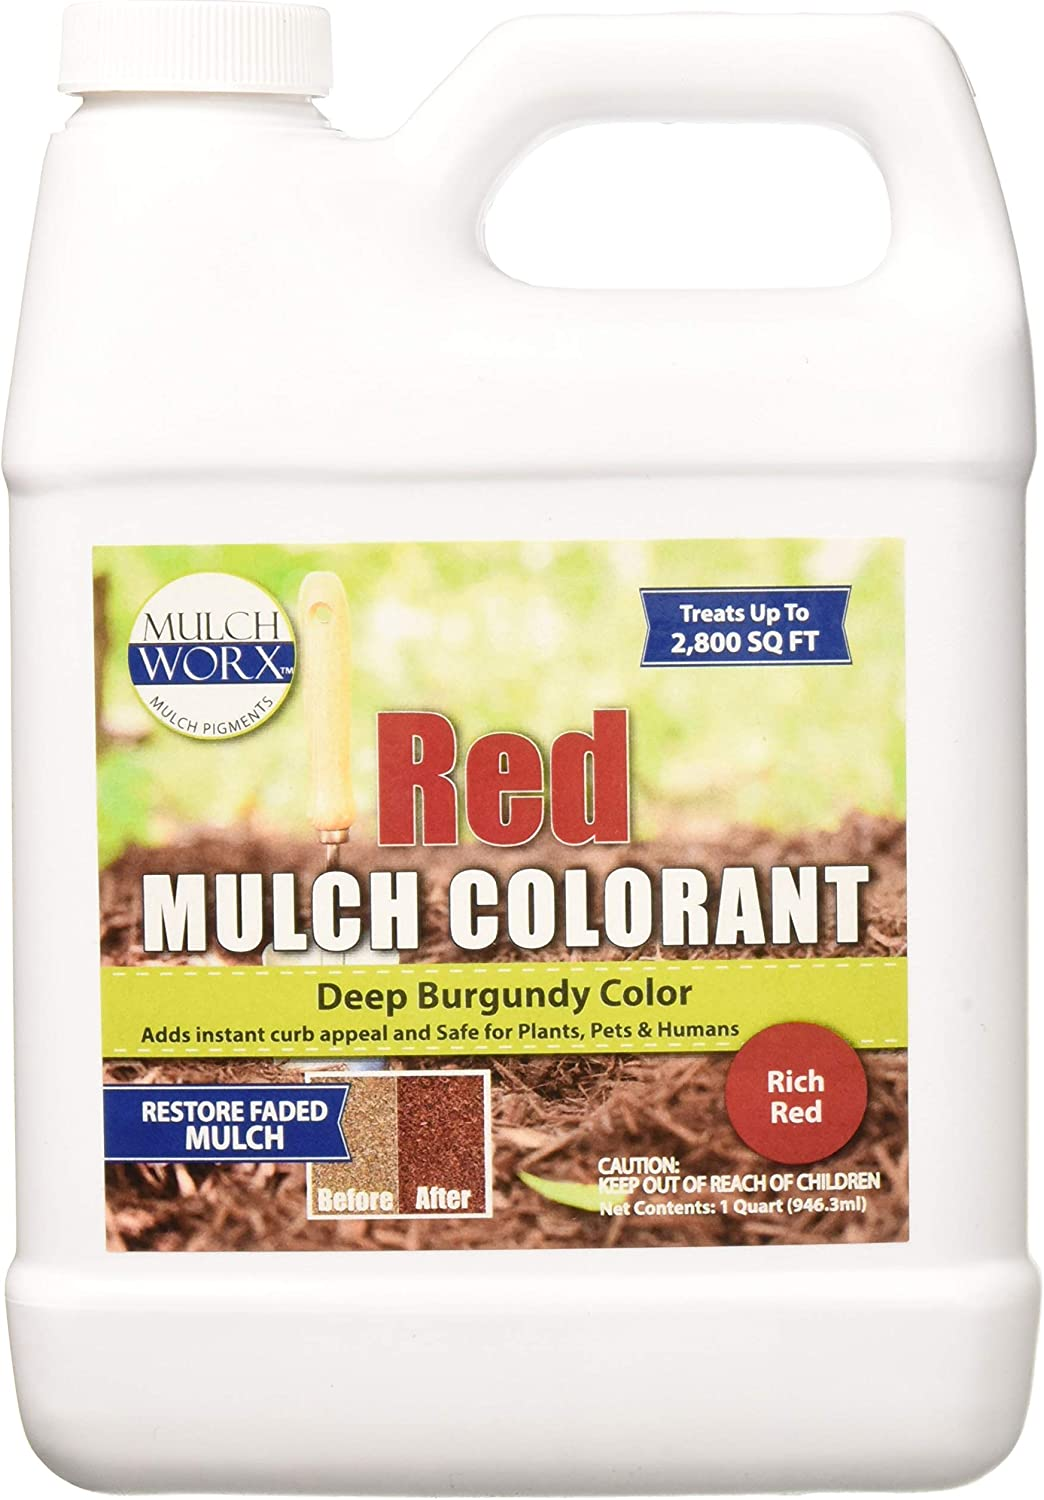 MulchWorx Red Mulch Color Concentrate - 2,800 Sq. Ft. - Deep Burgundy Red Mulch Dye Spray